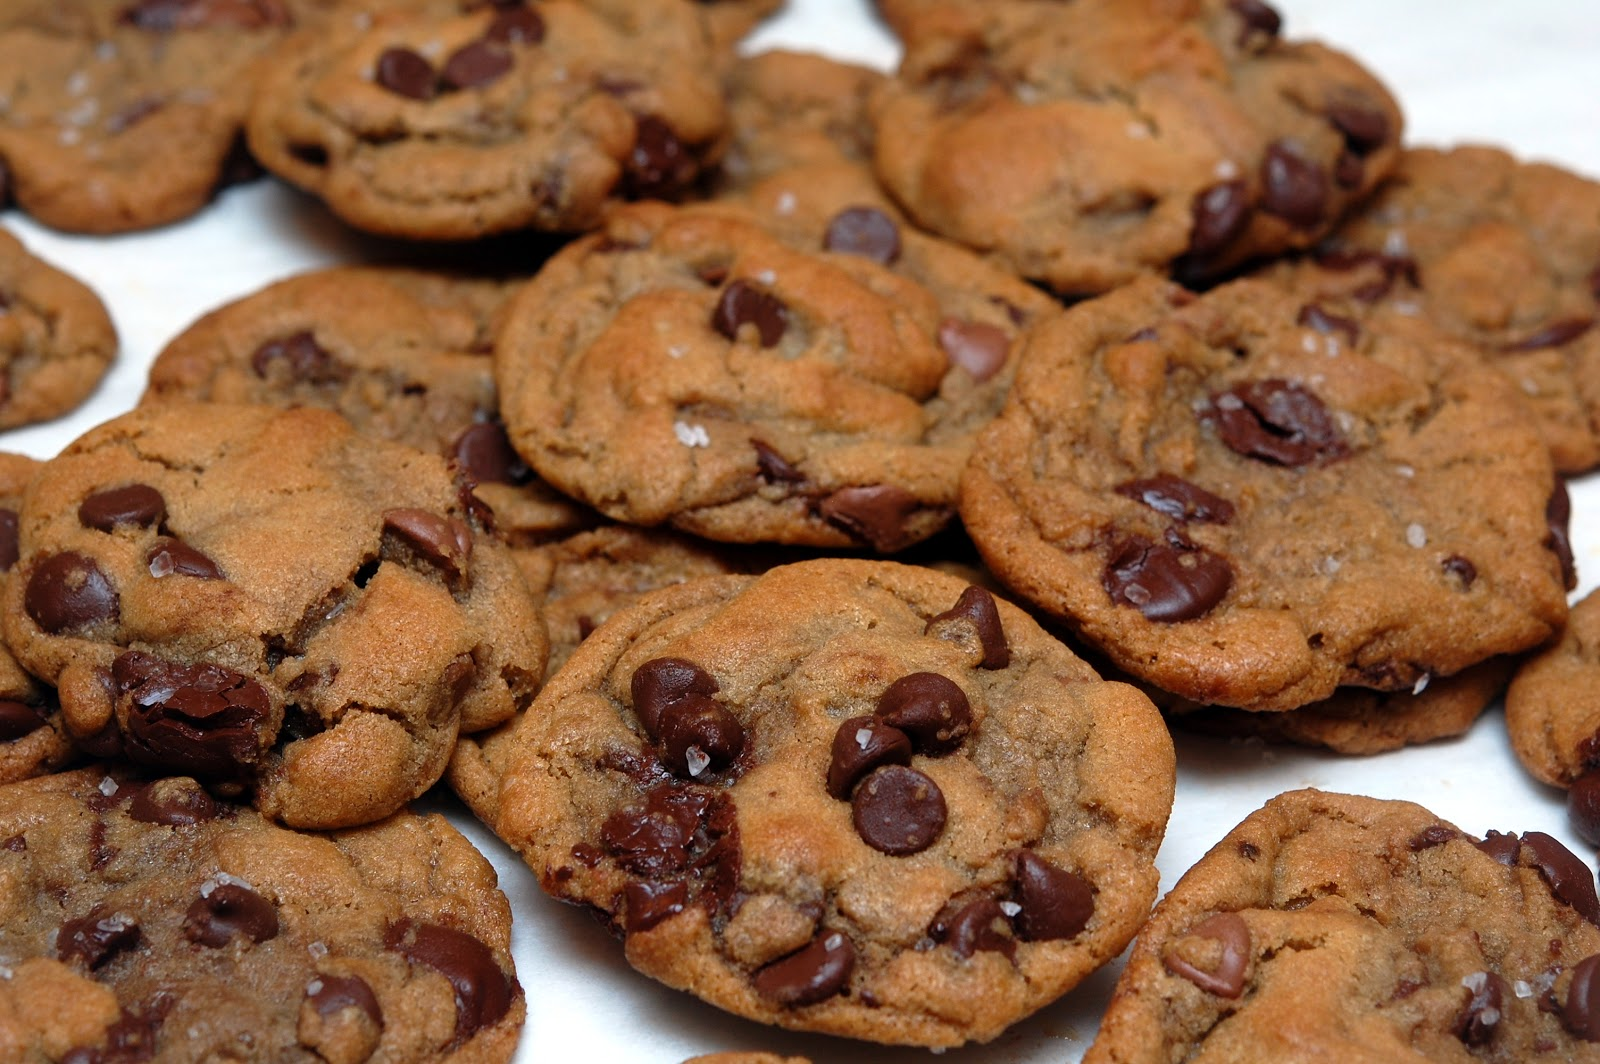 MY NEW FAVORITE CHOCOLATE CHIP COOKIE! - Hugs and Cookies XOXO